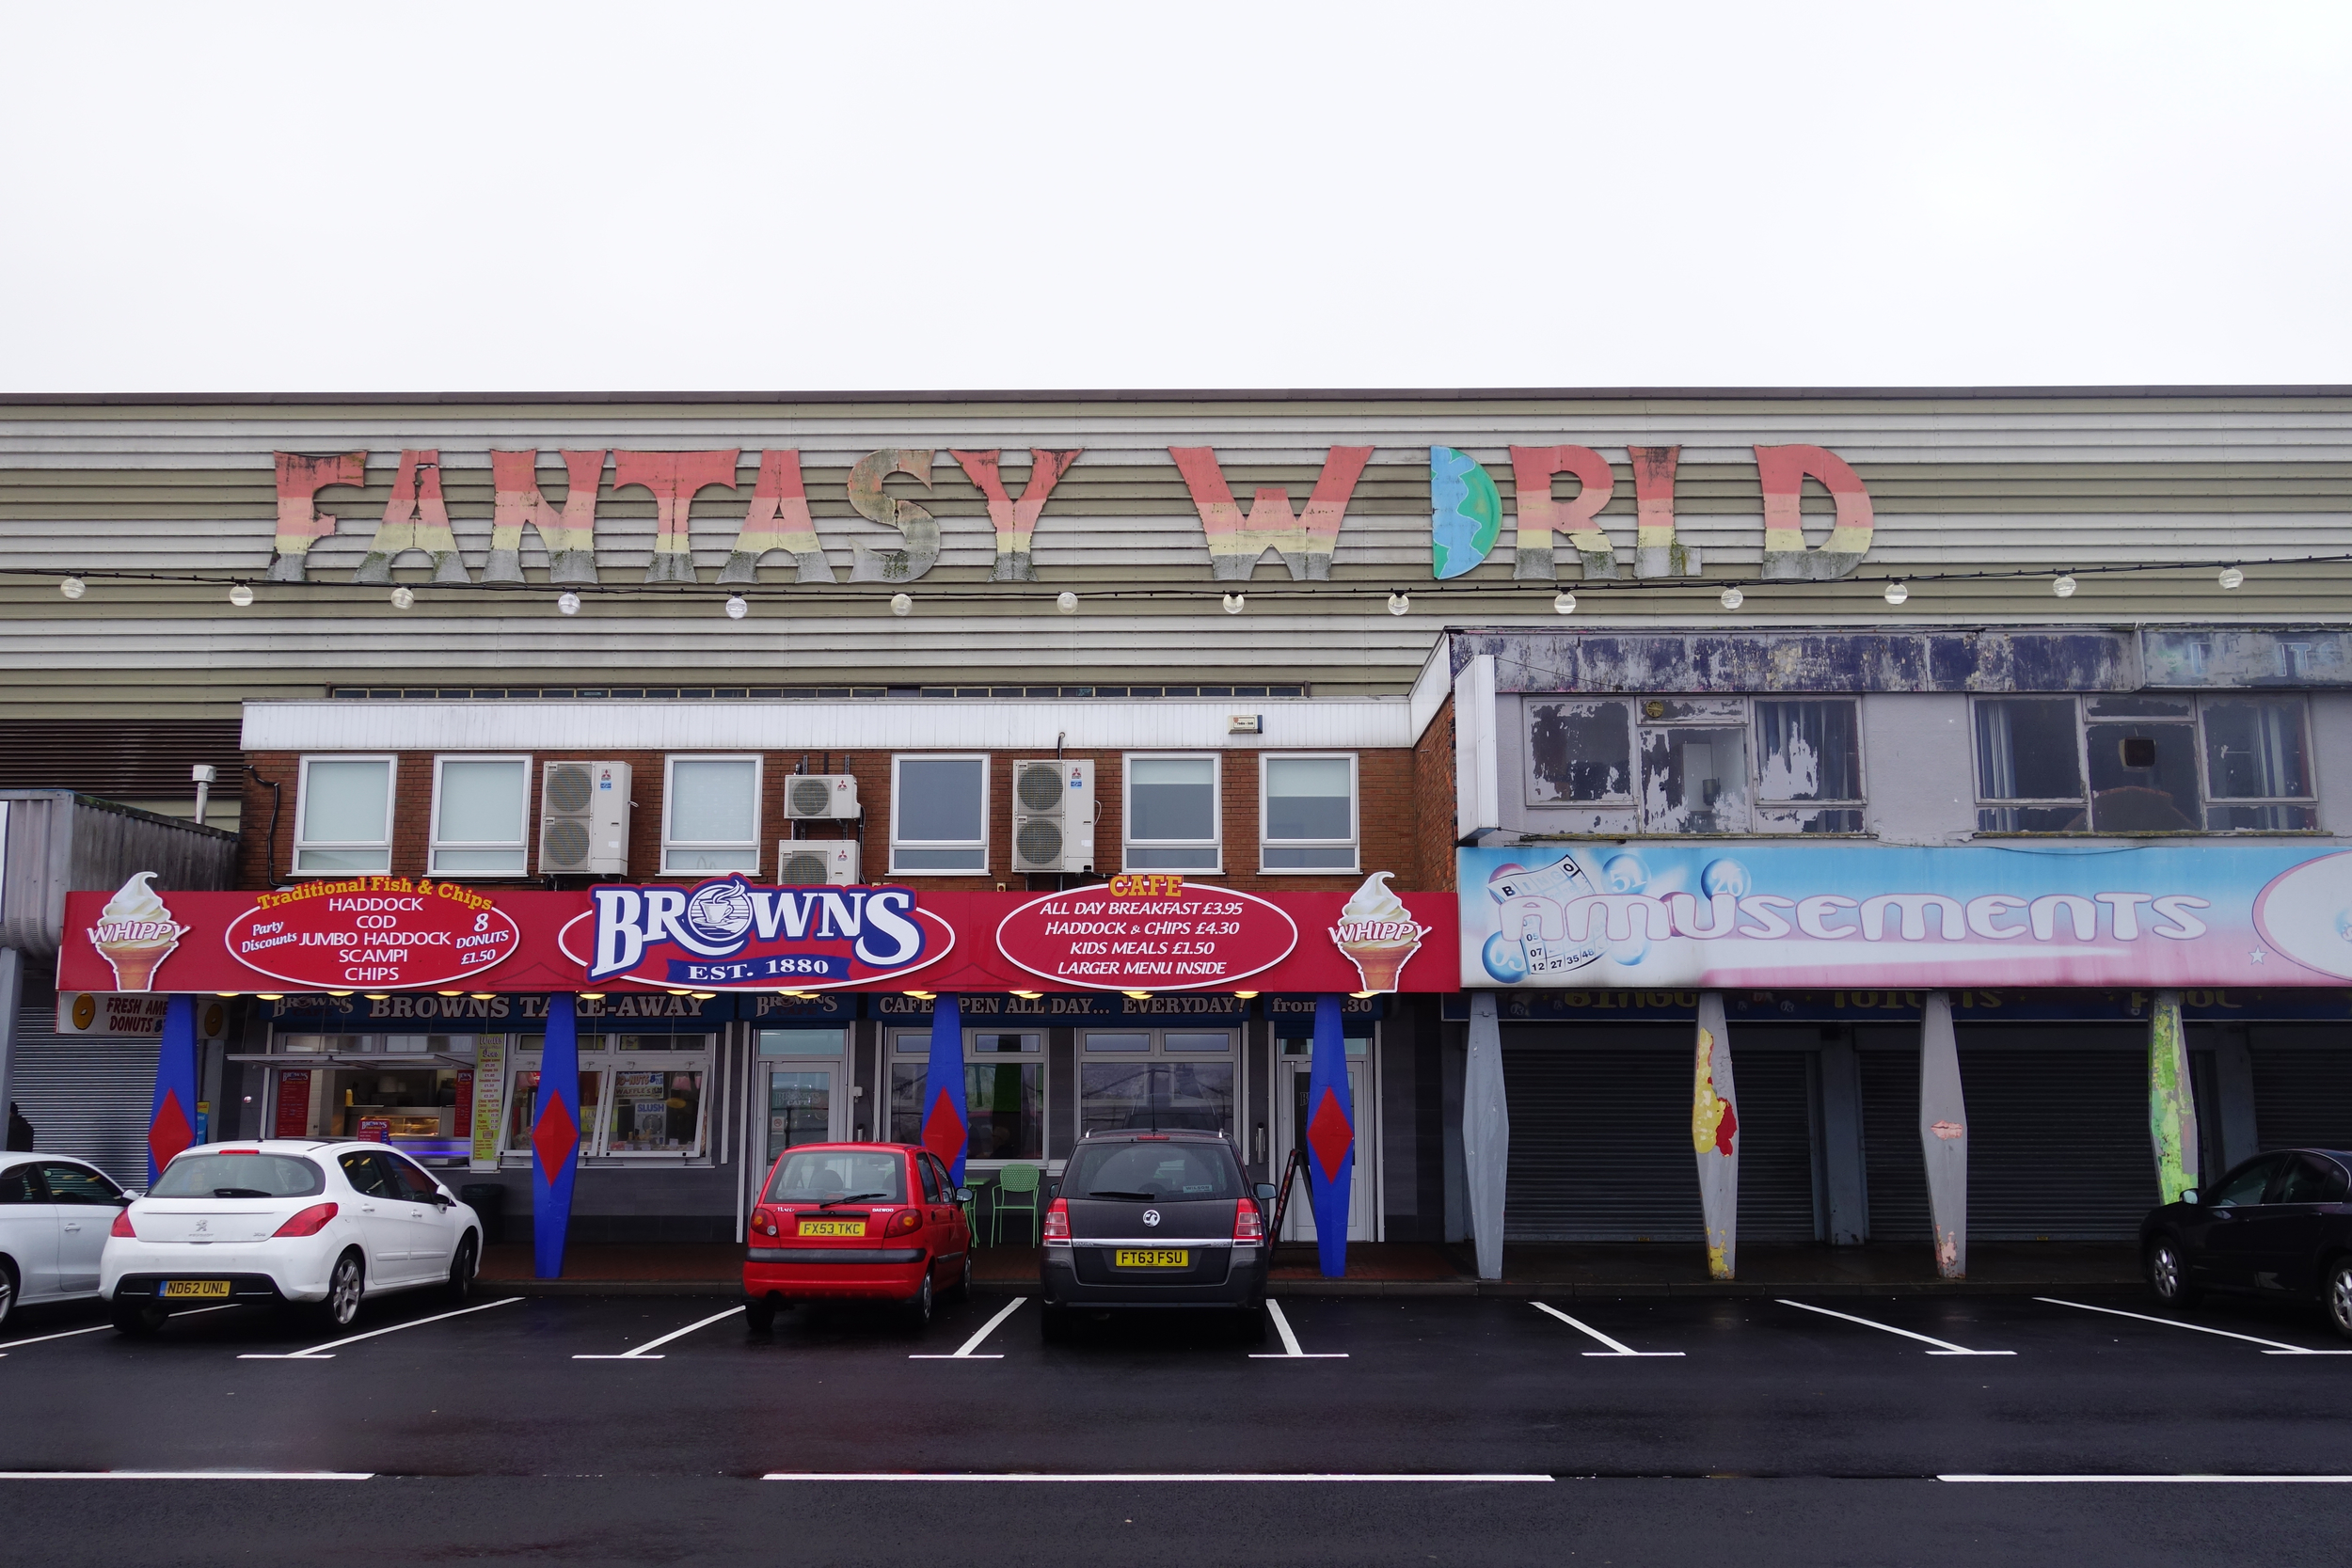 Fantasy World is a place; in Cleethorpes.